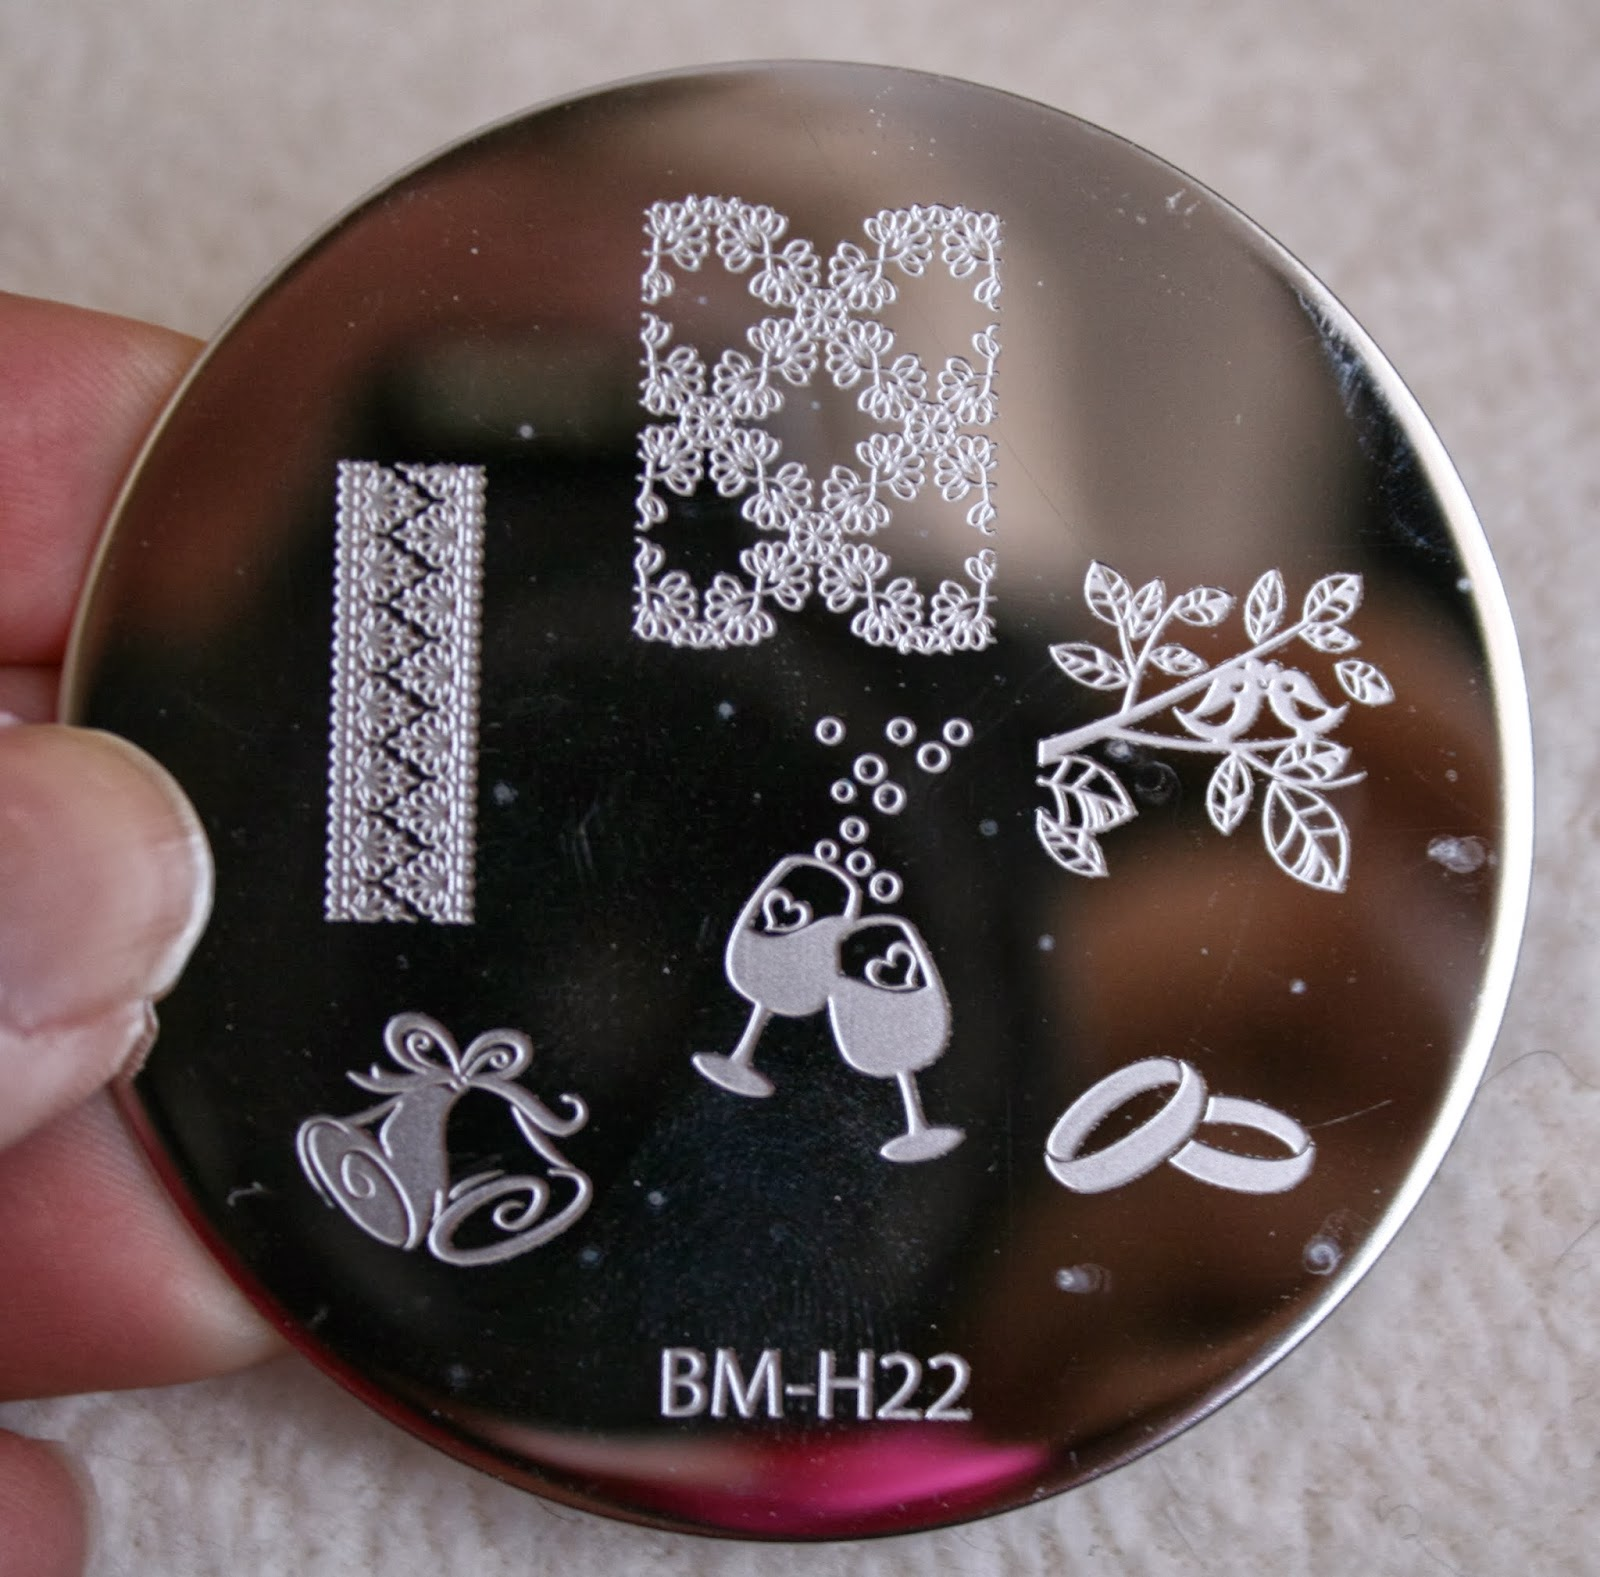 bundle monster nail stamping plates set collection holiday 2013 nails art stamp konad bm-h22